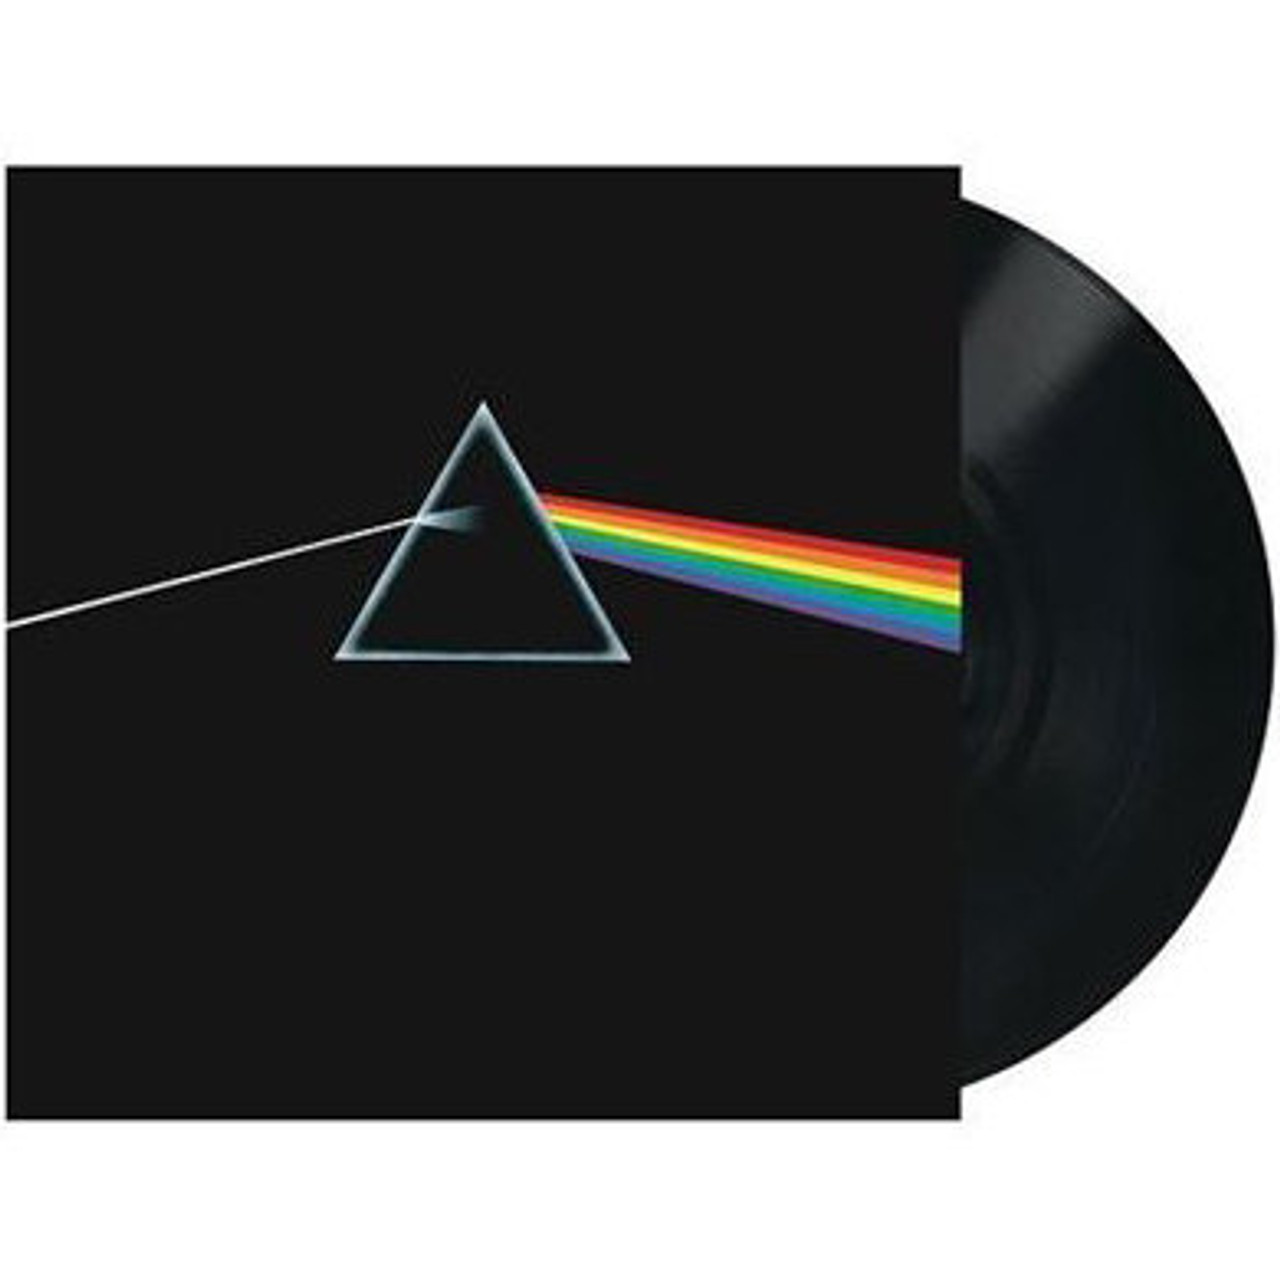 Dark Side of The Moon by Pink Floyd Available on Vinyl